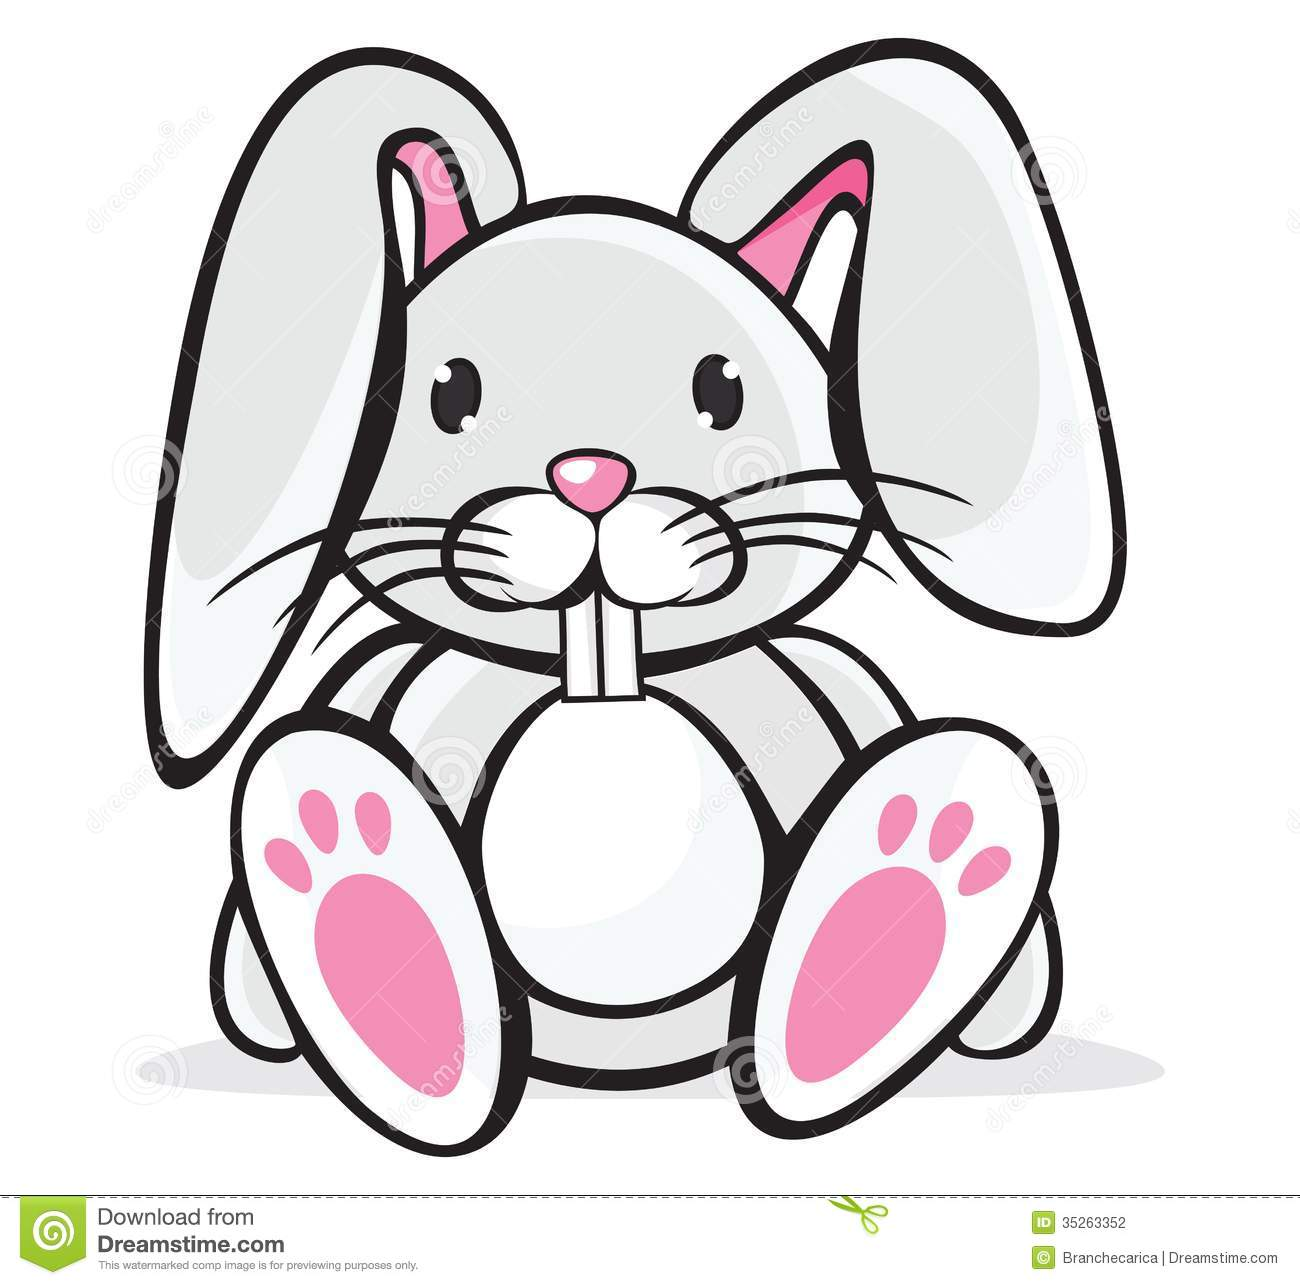 Go Back Images For Cute Rabbit Clipart-Go Back Images For Cute Rabbit Clipart-15